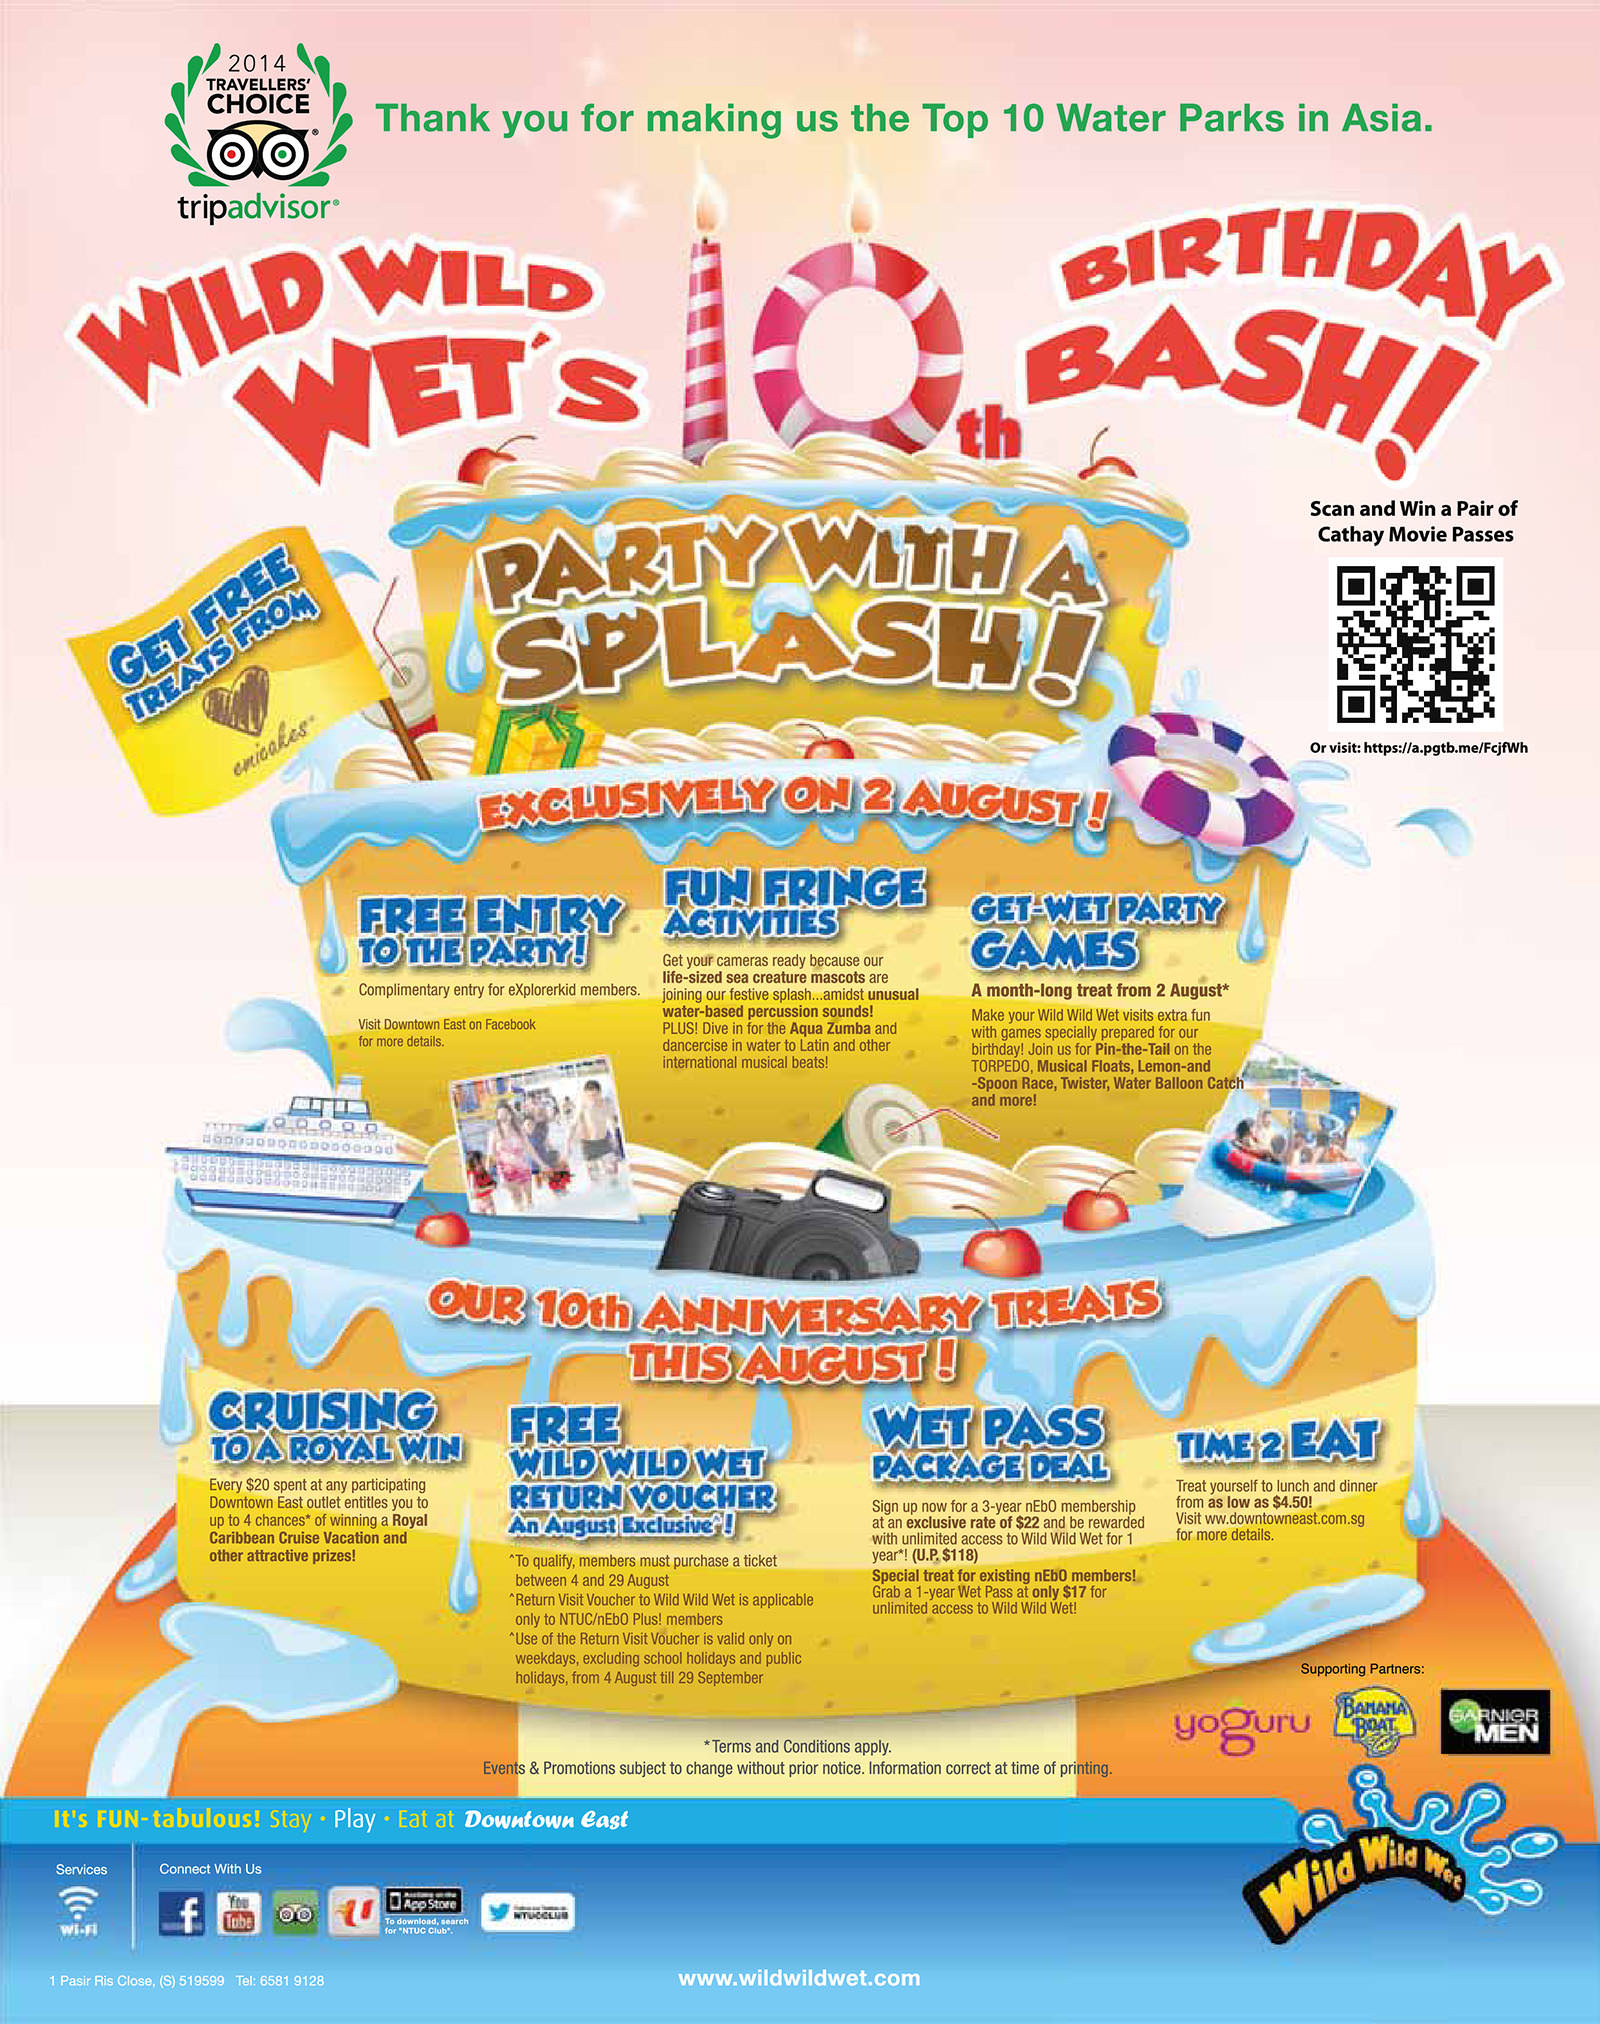 Wild Wild Wet 10th Birthday Bash August Promotions